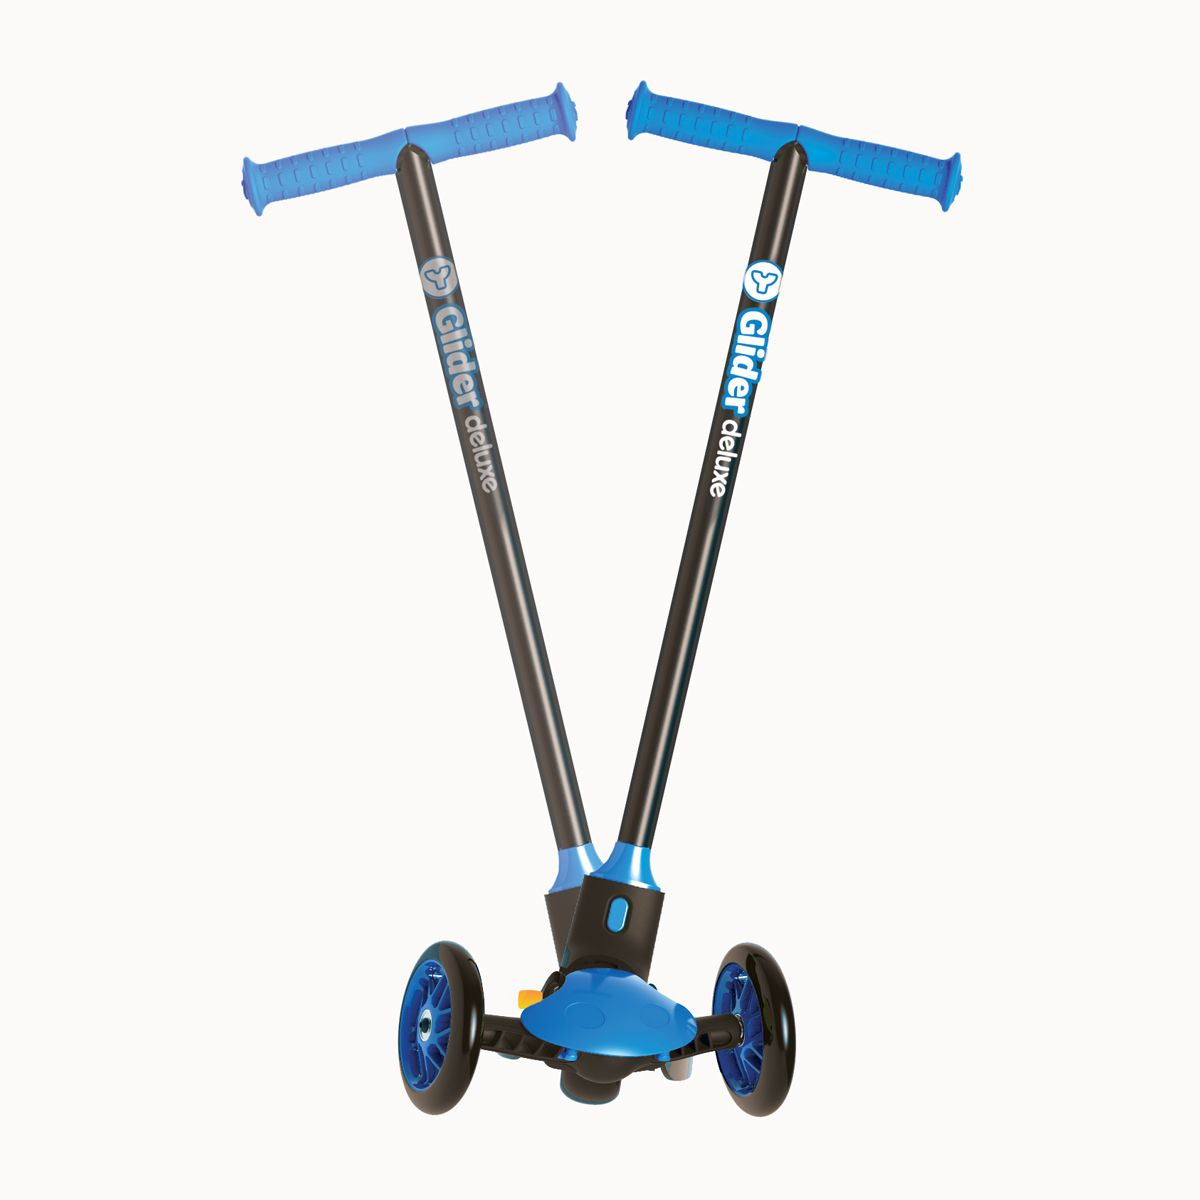 Y Glider Deluxe Kids Scooter Blue